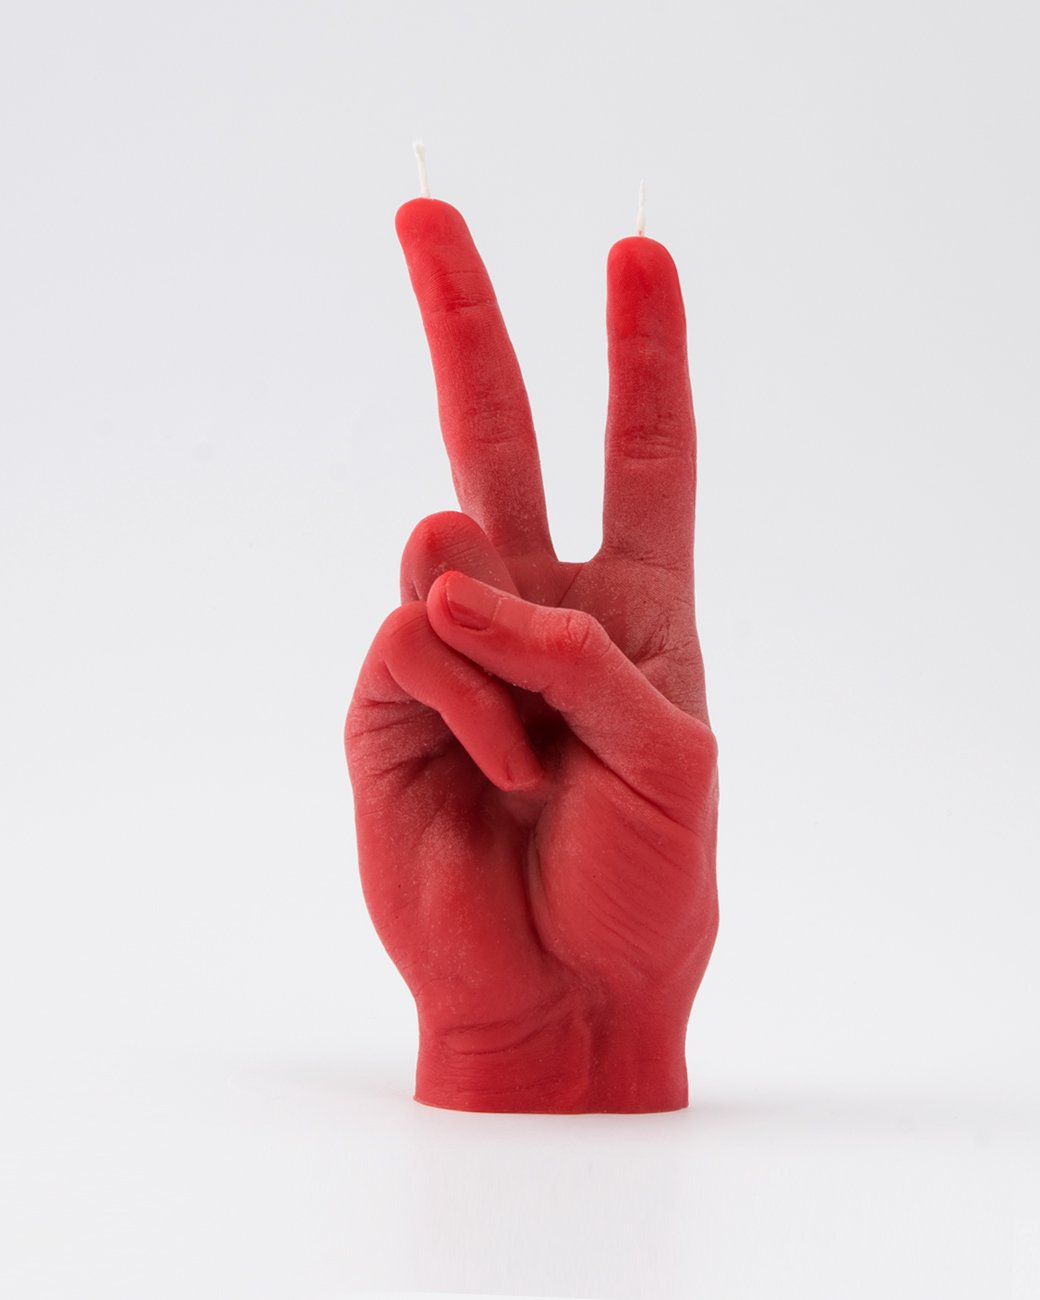 VICTORY hand gesture Red Candle Hand